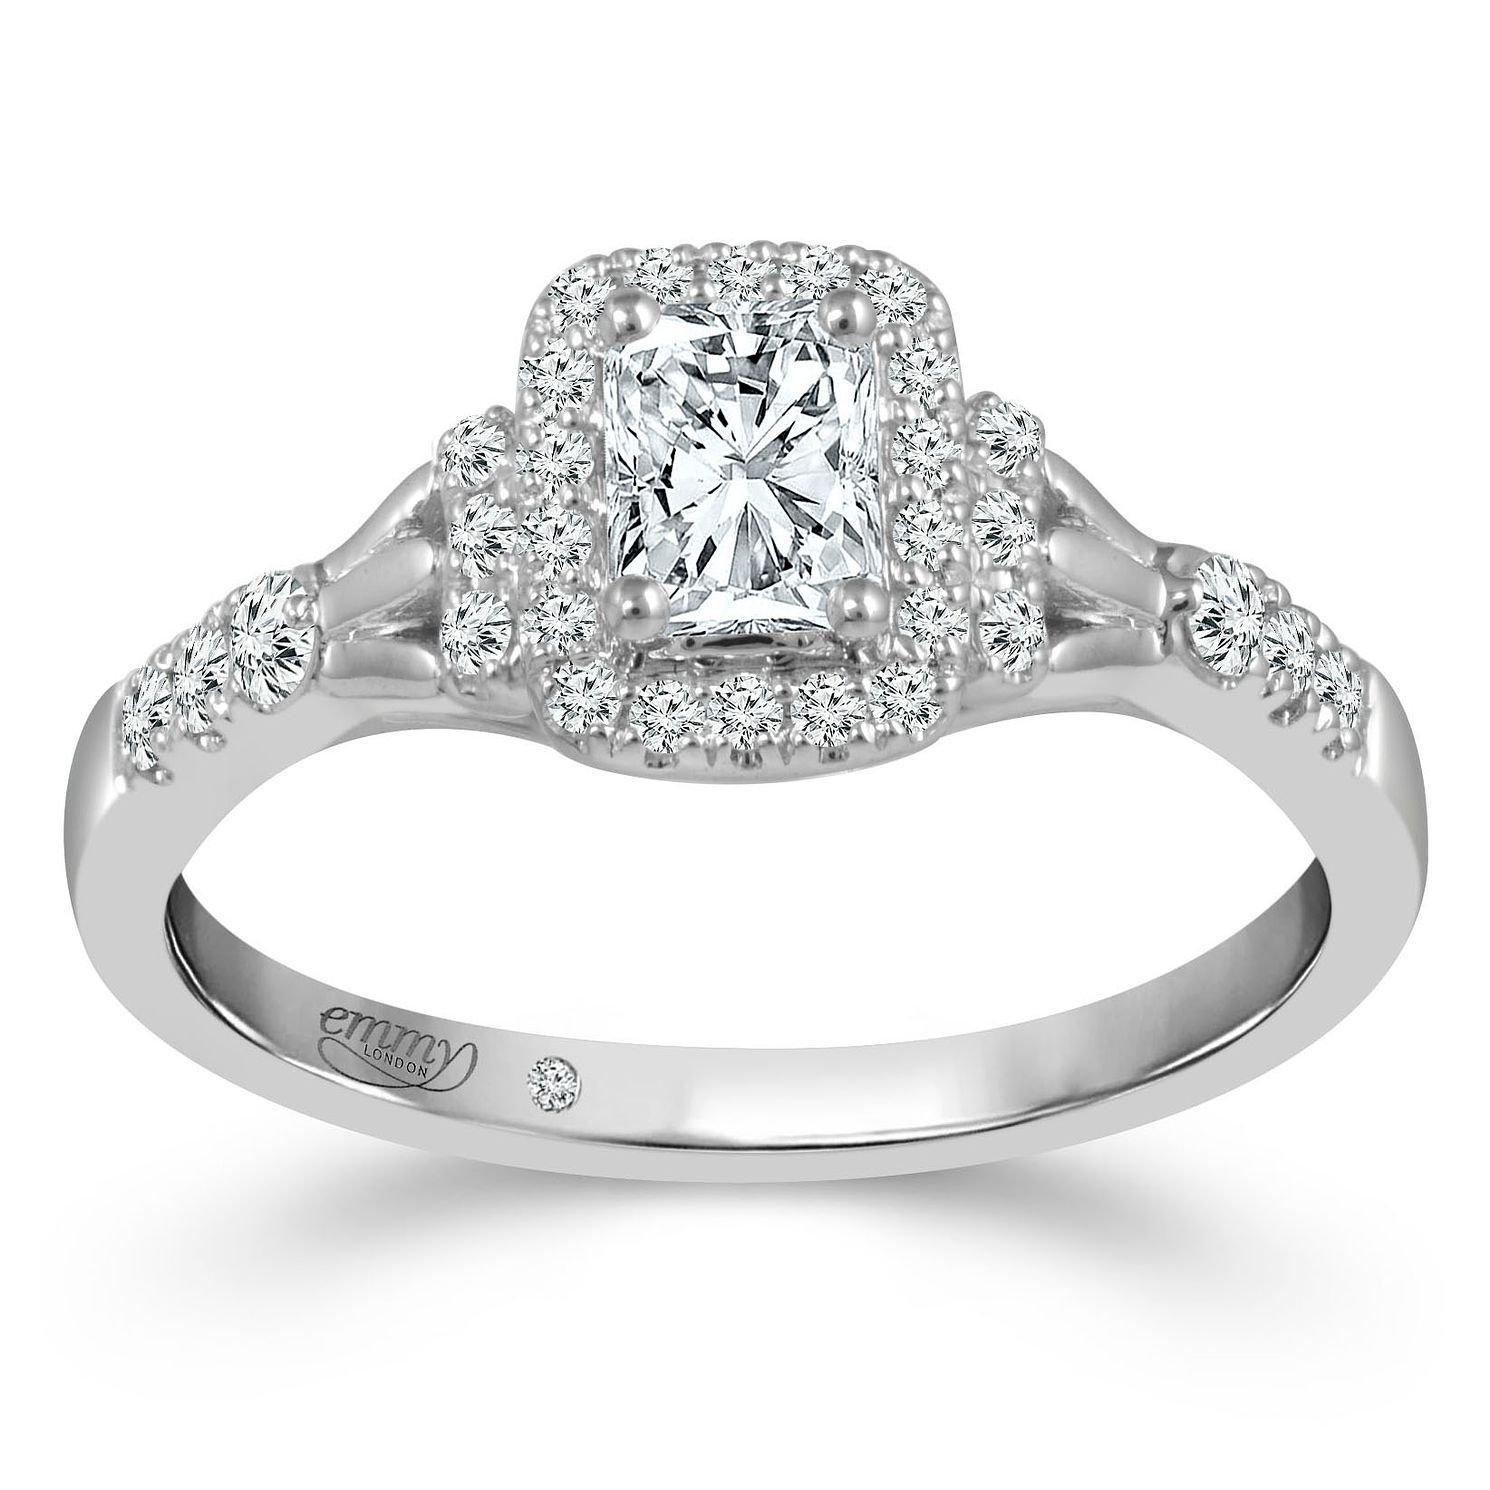 Emmy London 18ct White Gold 1/2ct Diamond Halo Ring - Product number 4479505